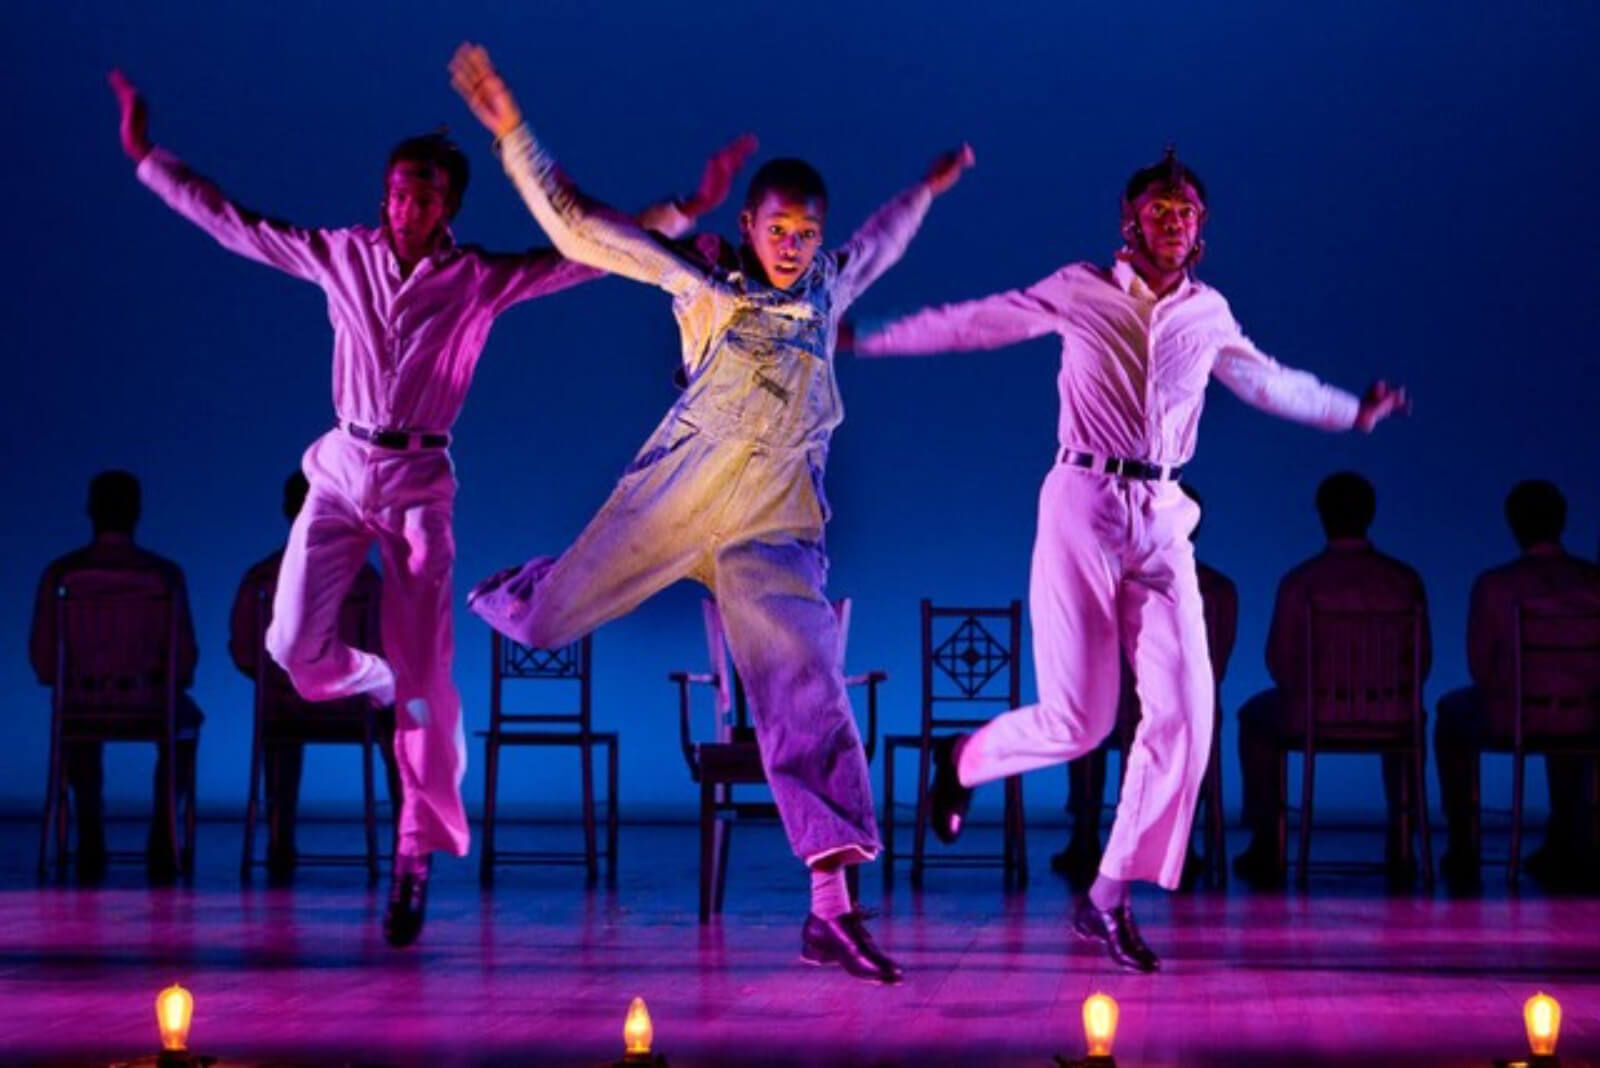 """Willie Roberson (Kendrick Jones), Eugene Willams (Jeremy Gumbs), and Roy Wright (Julias Thomas III) tap dance to """"The Electric Chair"""". They are bathed in purple light doing fancy tap steps."""